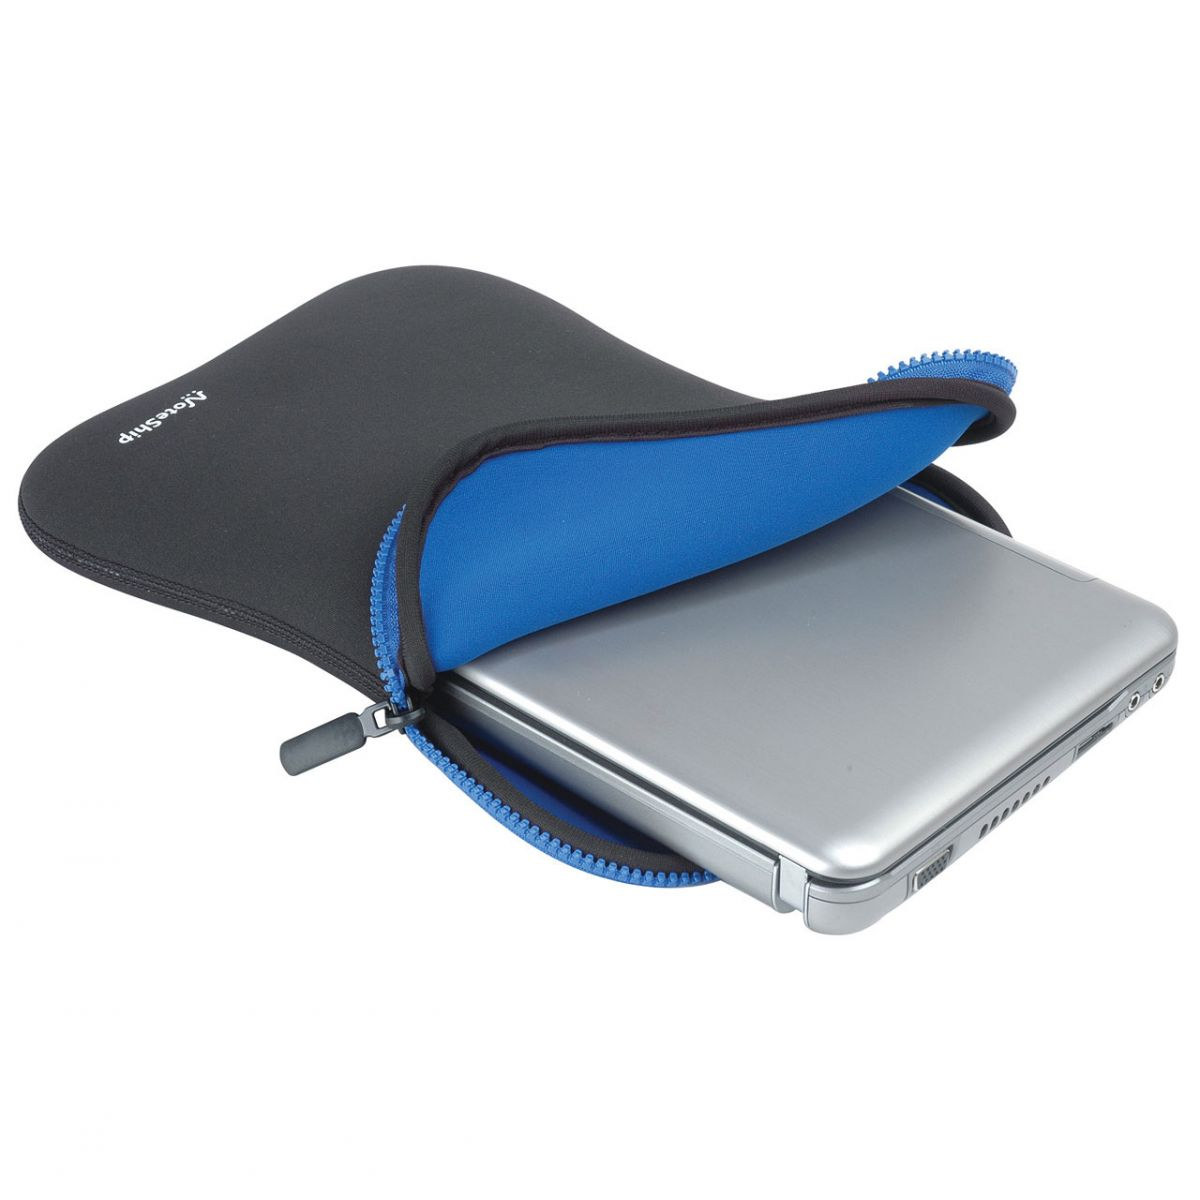 Case Dupla Face para Netbooks de 2 Cores em Neoprene 5340 - Leadership